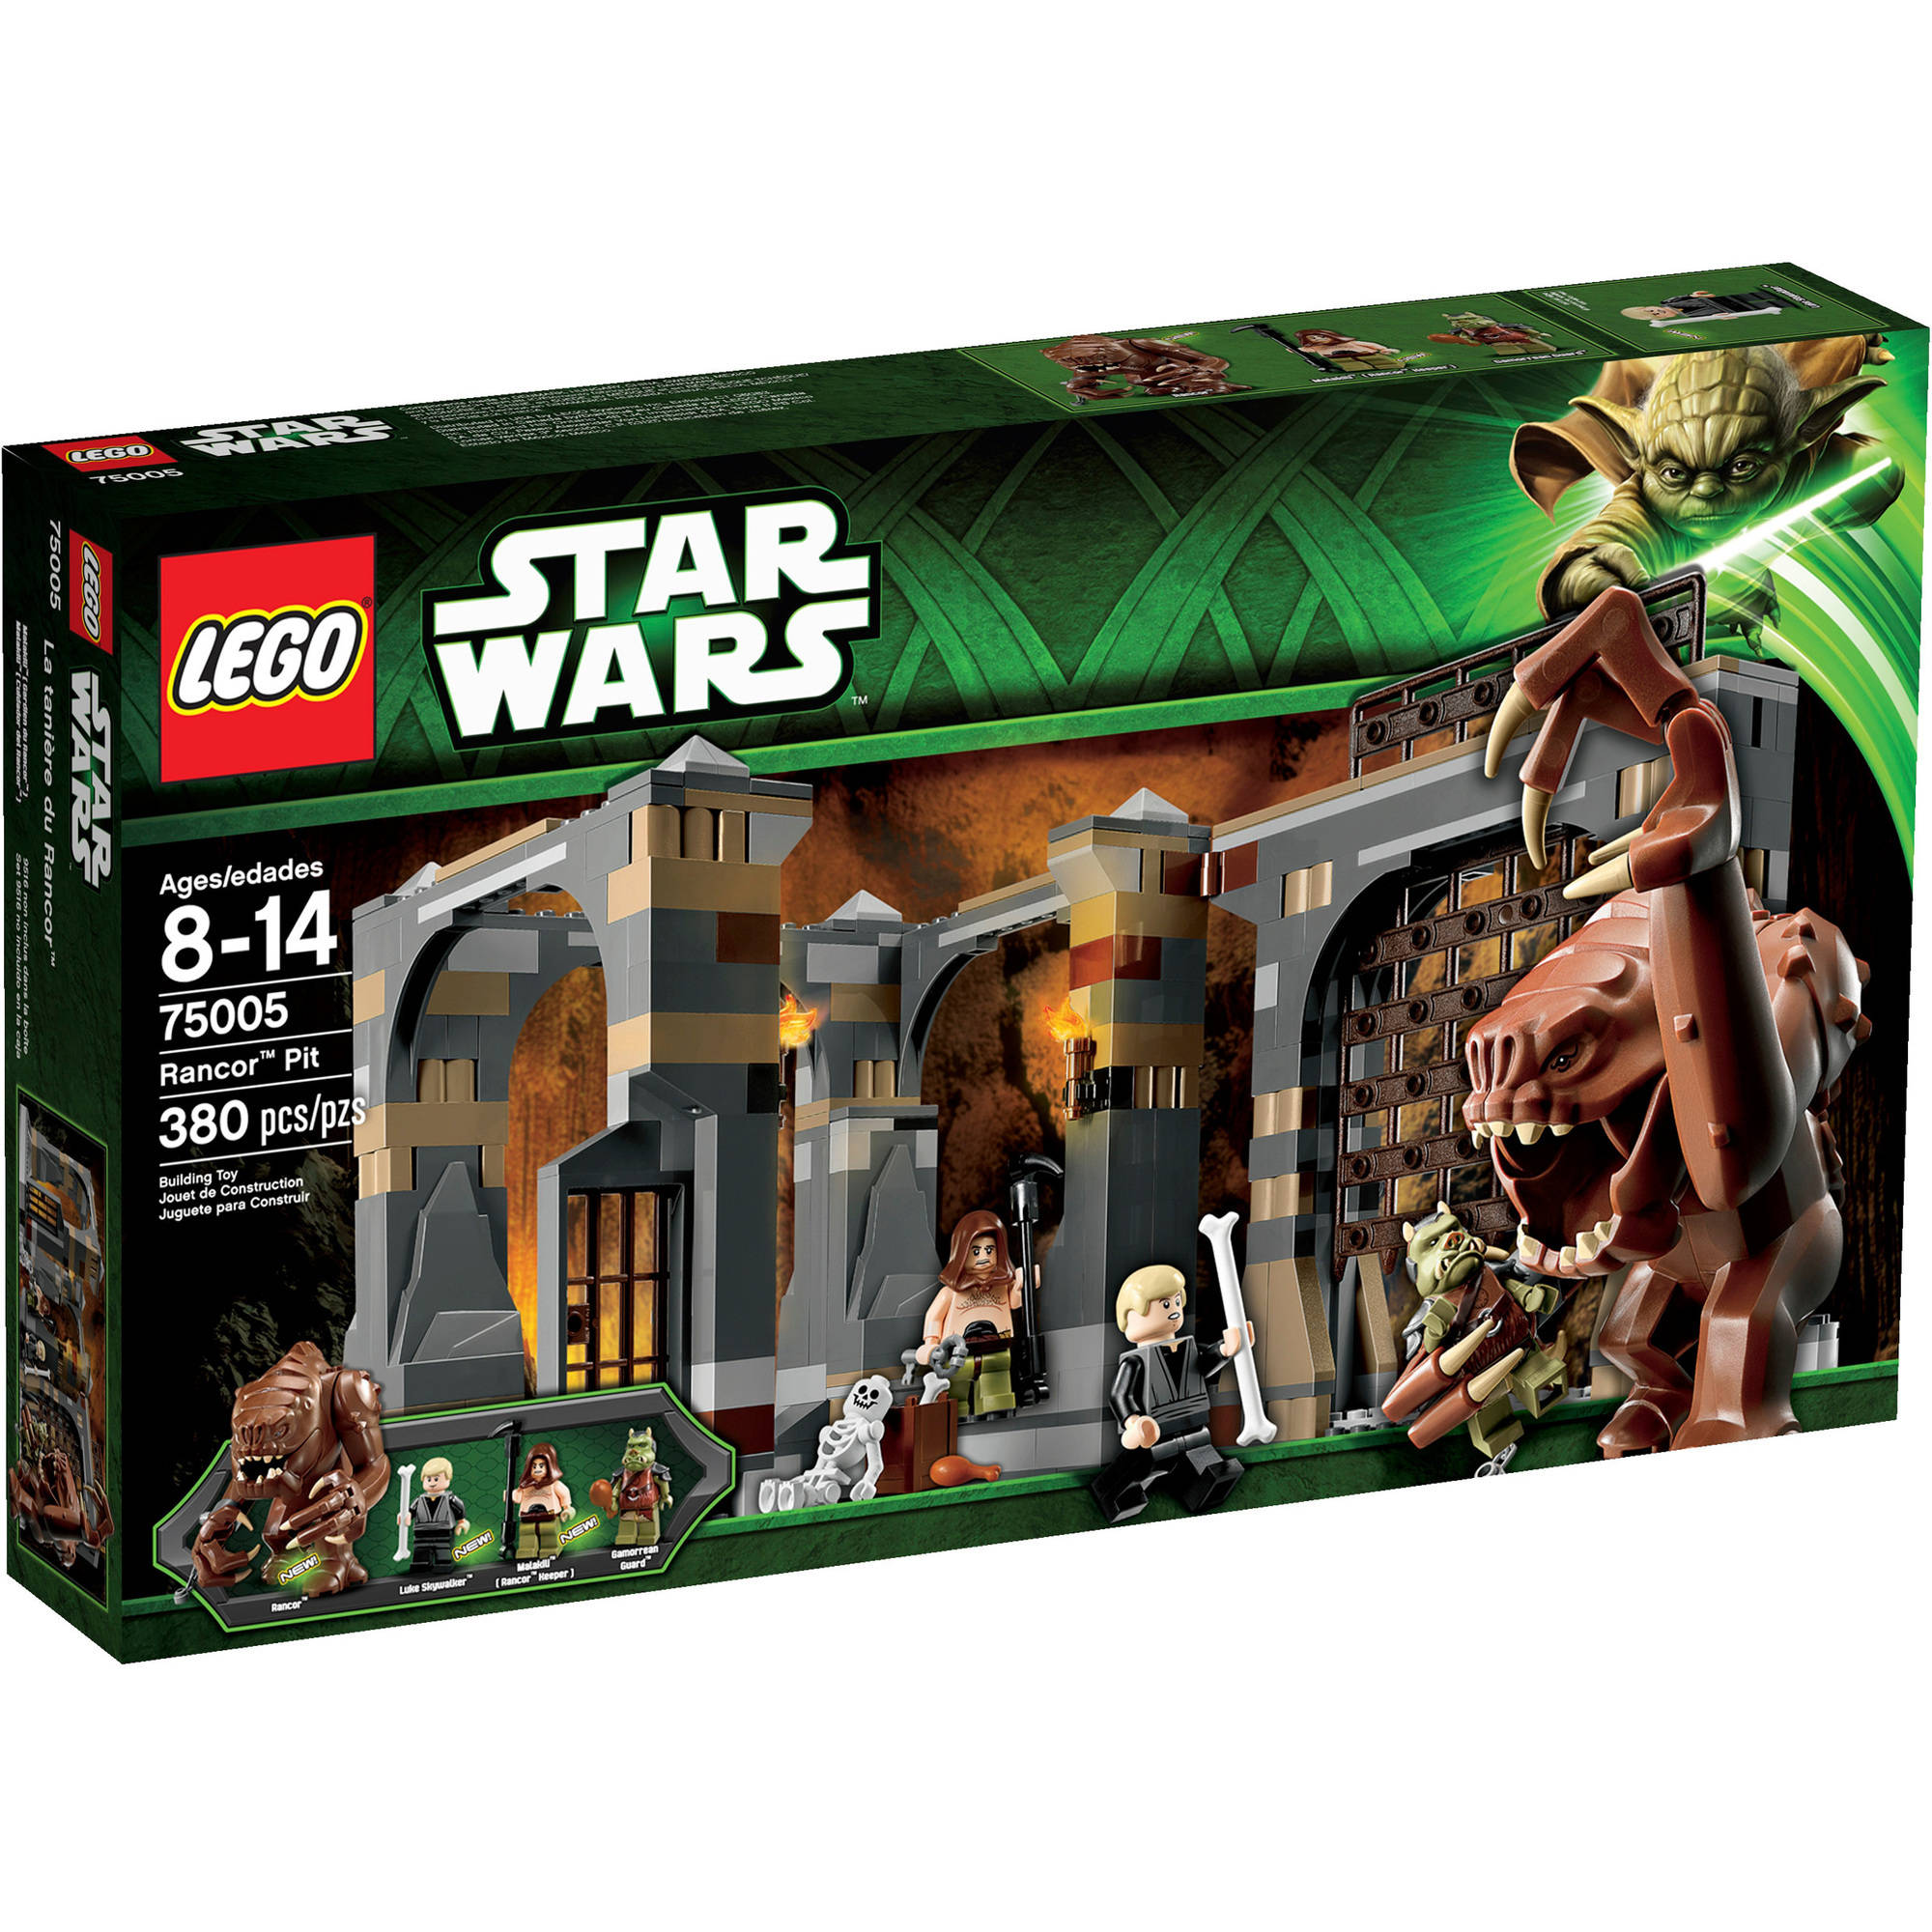 LEGO Star Wars Rancor Pit Play Set